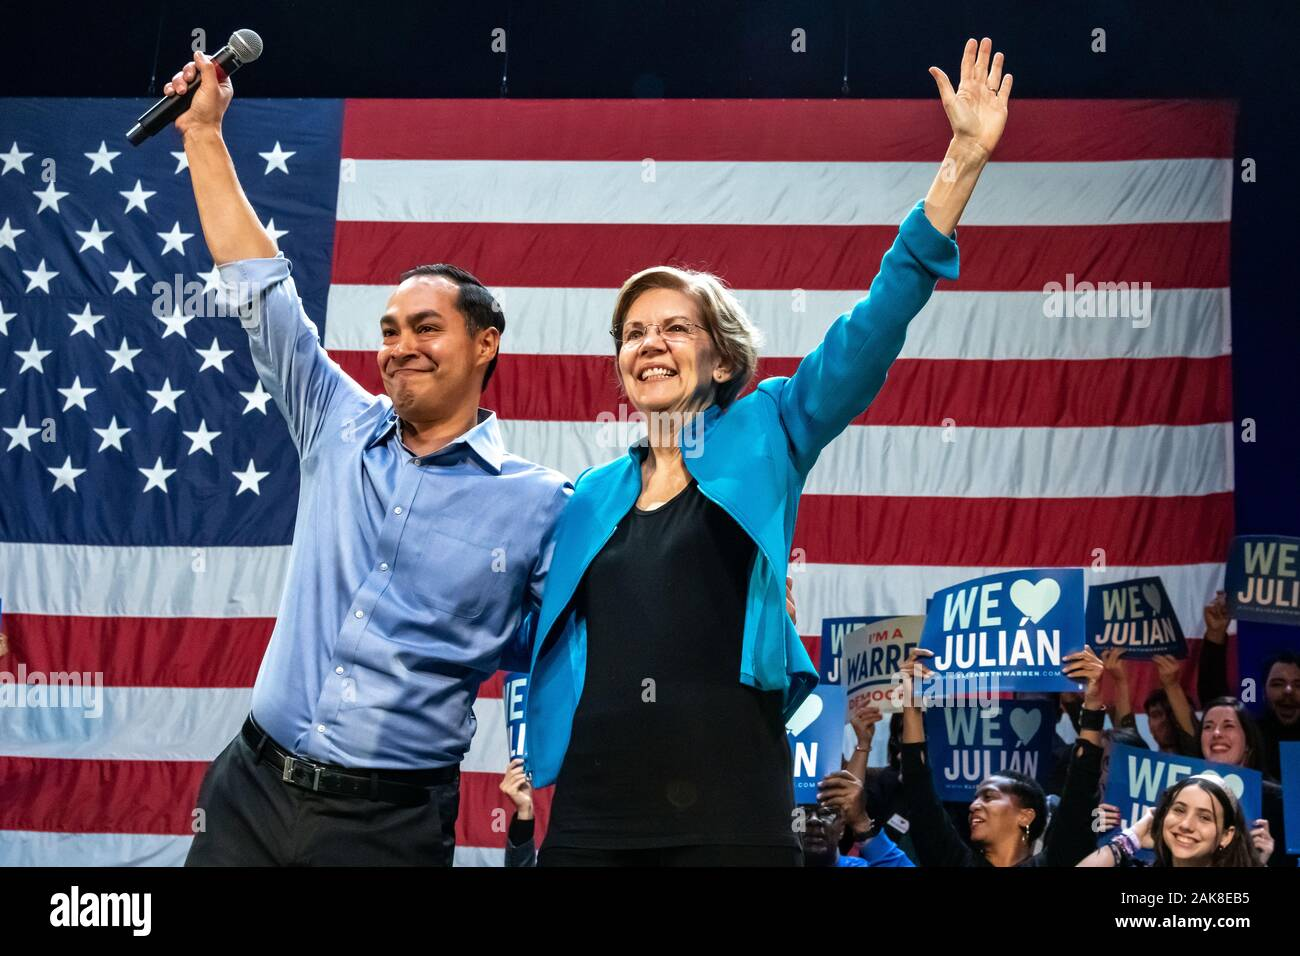 New York, USA,  7 January 2020.  US Senator and Presidential candidate Elizabeth Warren and Julian Castro, former secretary of Housing and Urban Development (HUD) wave to supporters during a campaign rally at Brooklyn's Kings Theatre in New York.  Credit: Enrique Shore/Alamy Live News Stock Photo